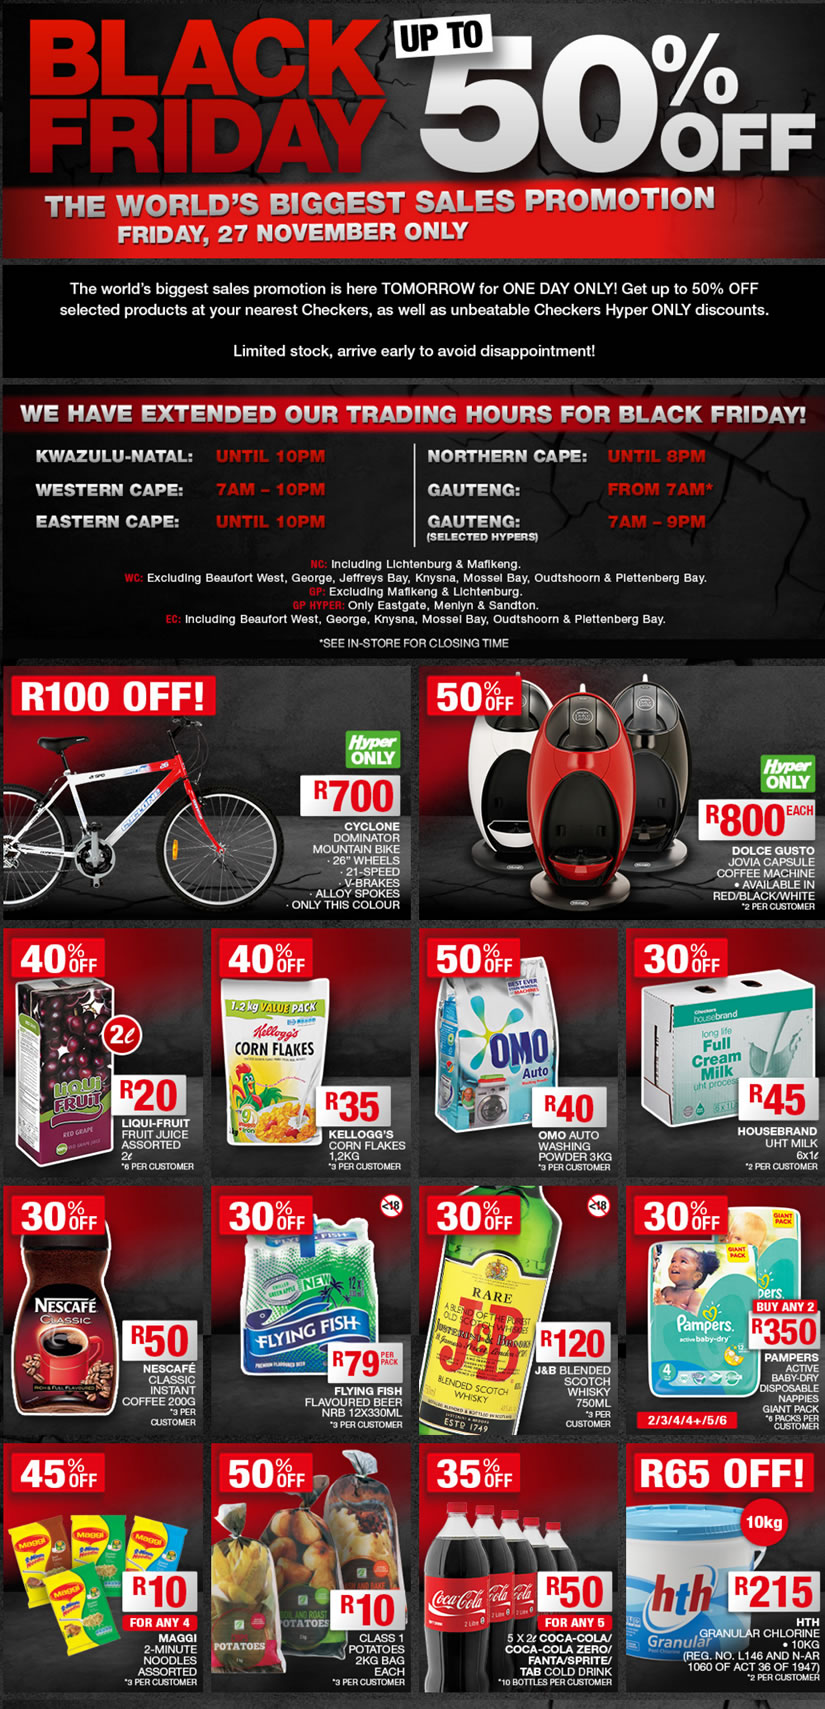 Black Friday Specials List Of Black Friday Hot Deals Yomzansi